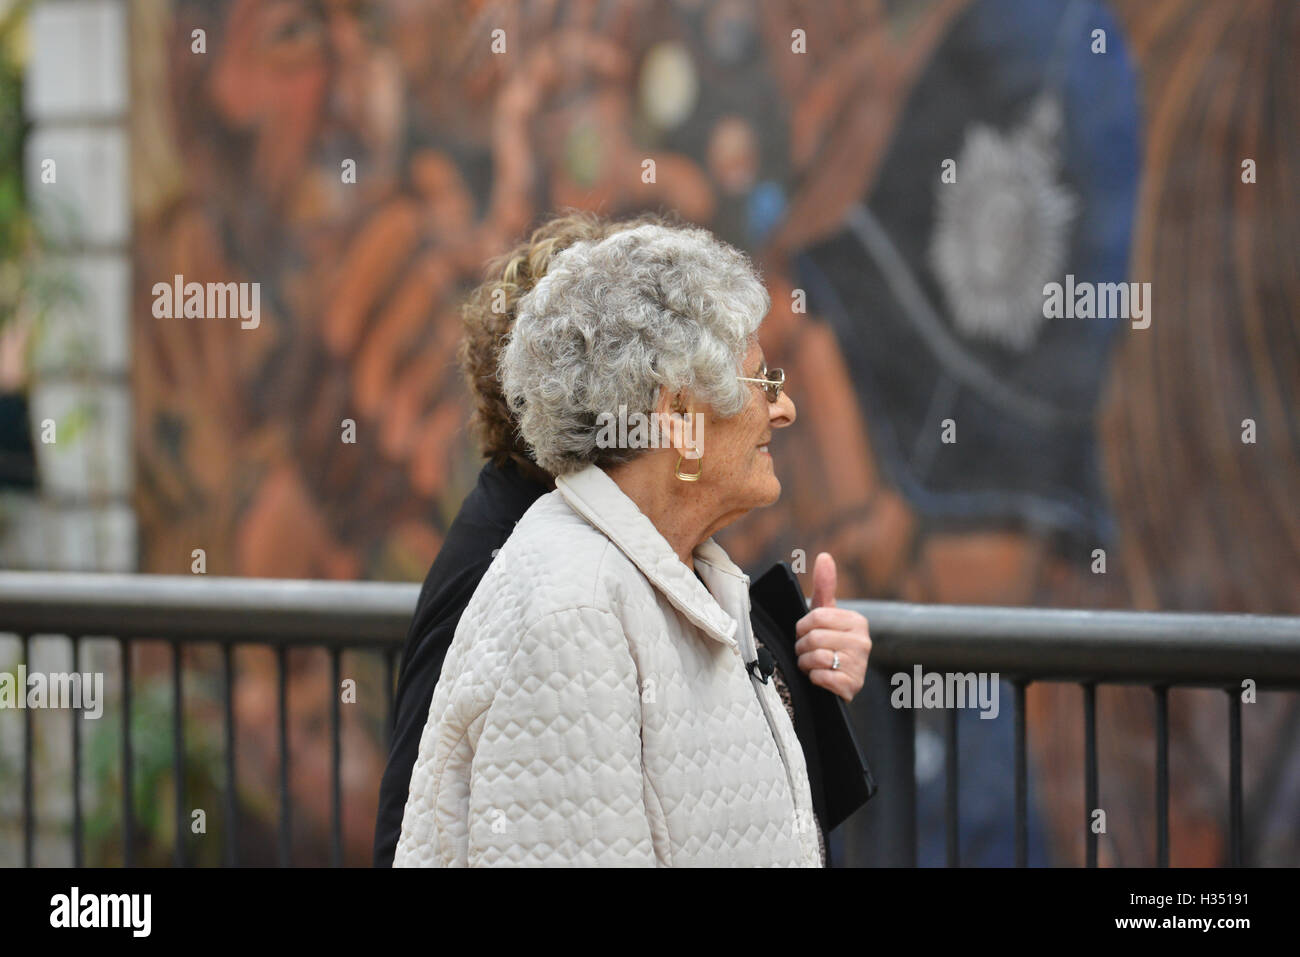 Cable Street, London, UK. 4th October 2016. Cable St 80th anniversary is commemorated. Beatty Orwell (99) who was - Stock Image